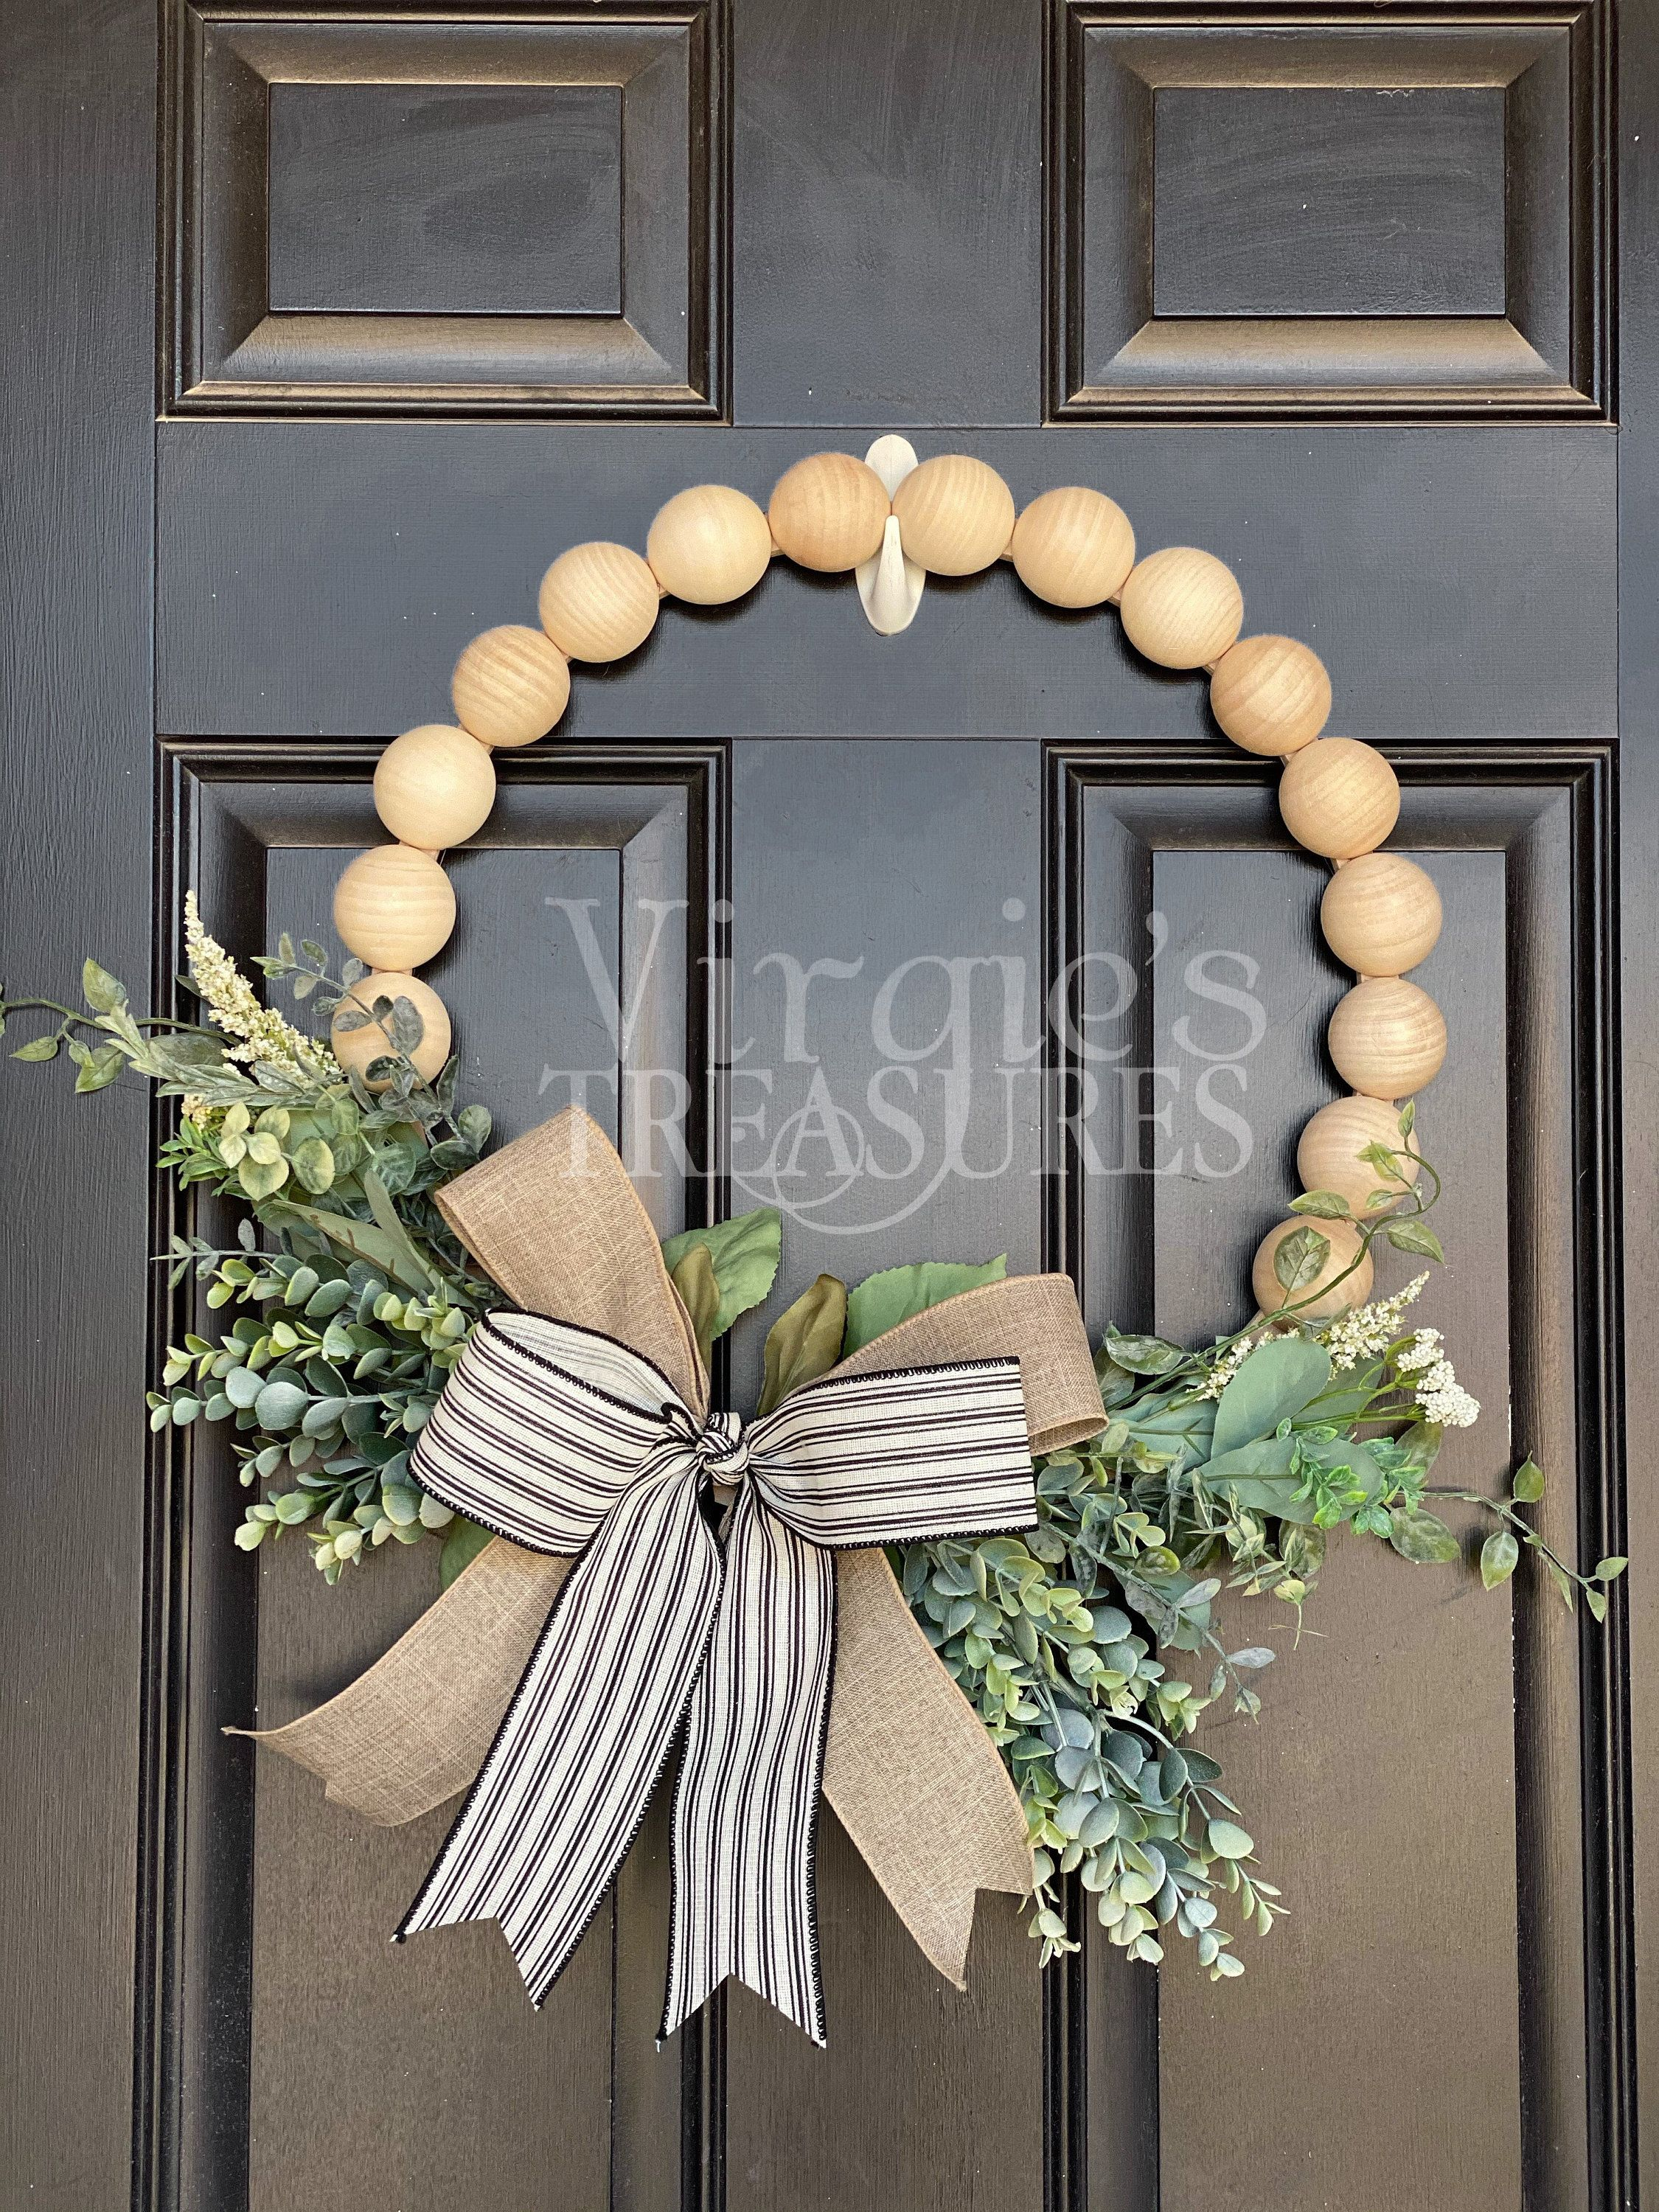 Excited To Share This Item From My Etsy Shop Wood Bead Wreath Farmhouse Wreath Eucalyptus Hoop Wreath Wall Gallery Diy Wreath Kitchen Wreath Wreath Crafts